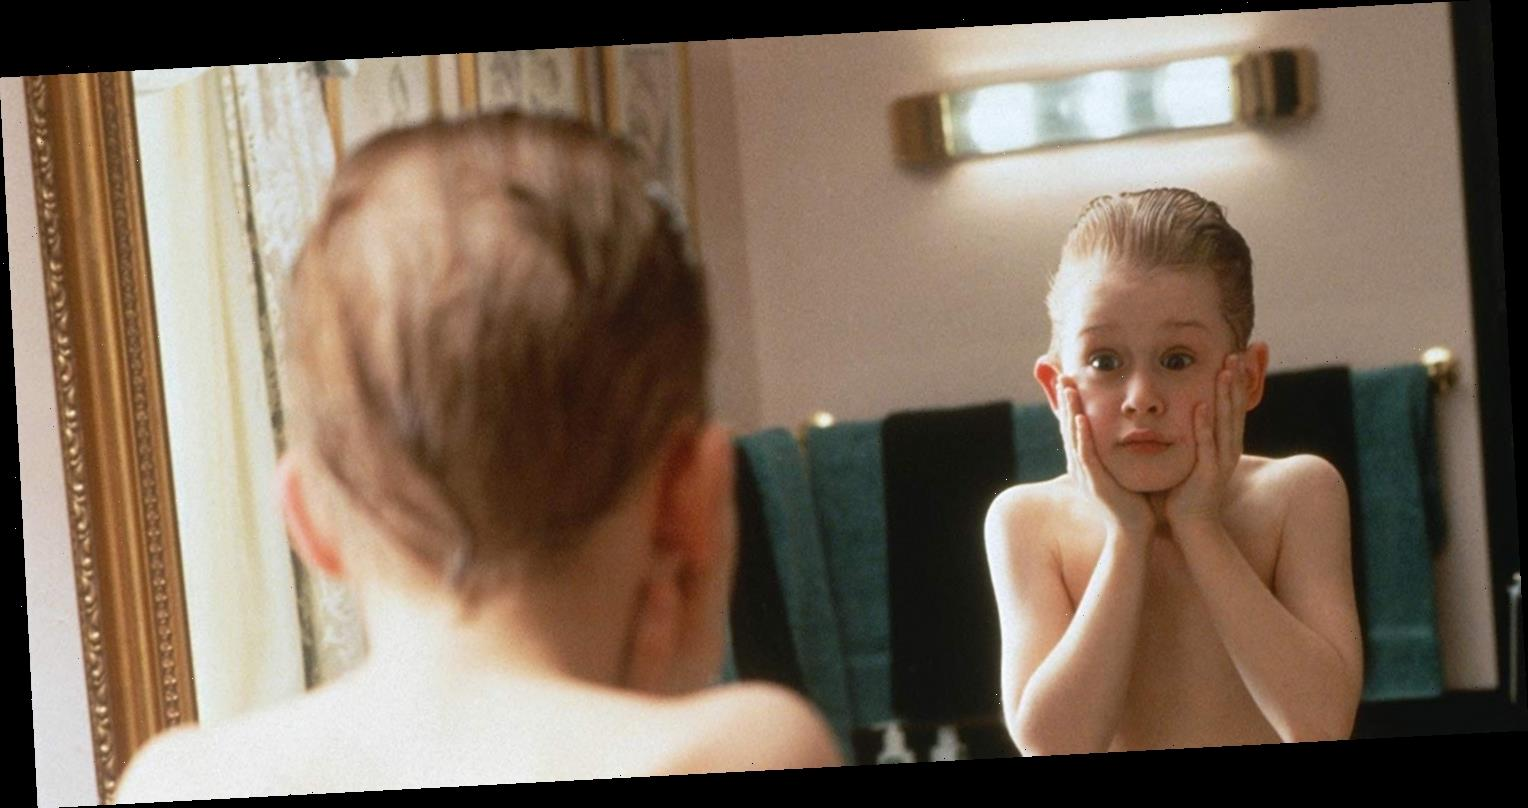 New 'Home Alone' Reboot Details: What We Know About the New Mischievous Main Character